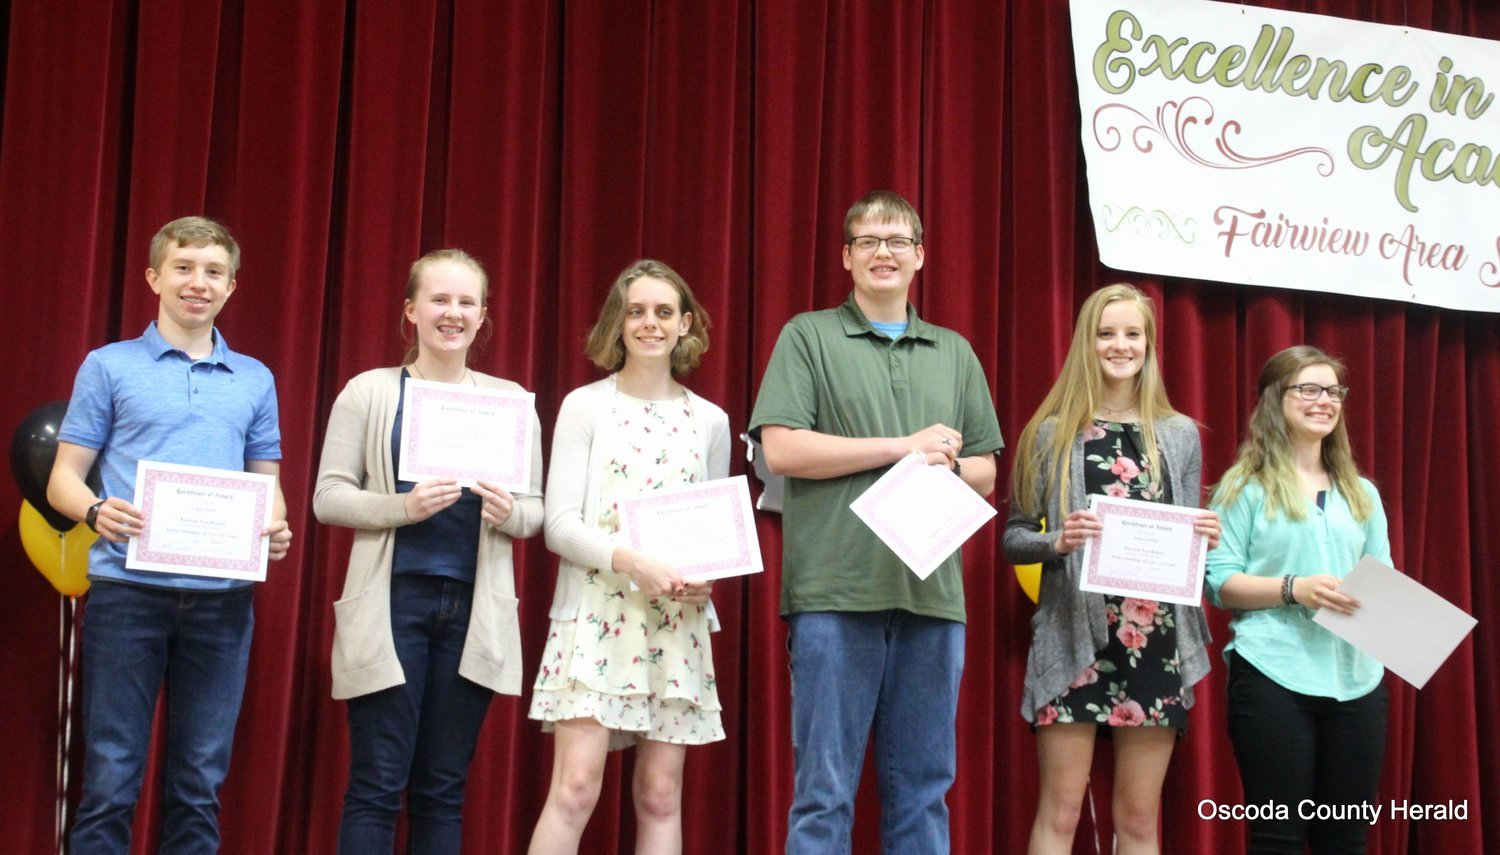 Perfect attendance Award Speech Inspirational Fairview area Schools Honors Students Oscoda County Herald